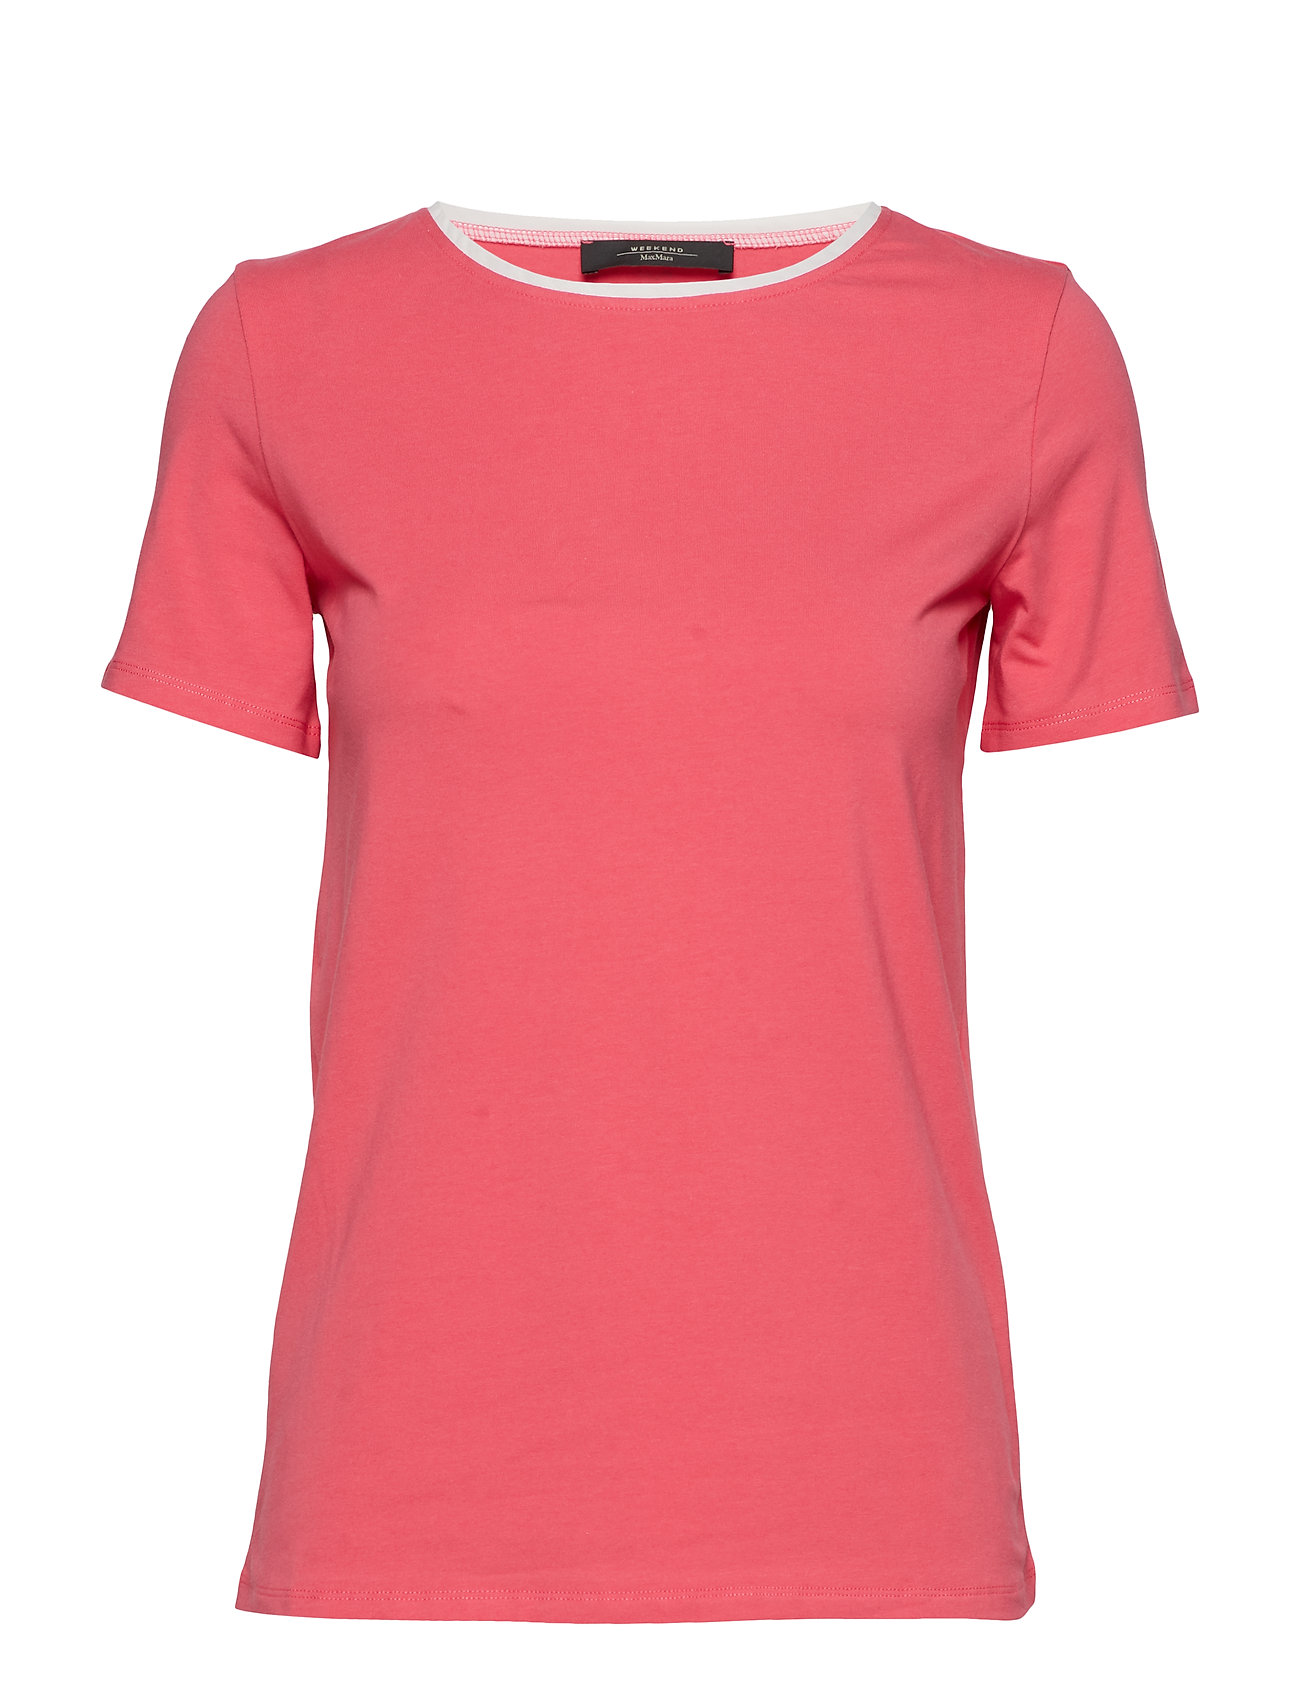 Weekend Max Mara MULTIC - SHOCKING PINK KNITTED BLOUSE